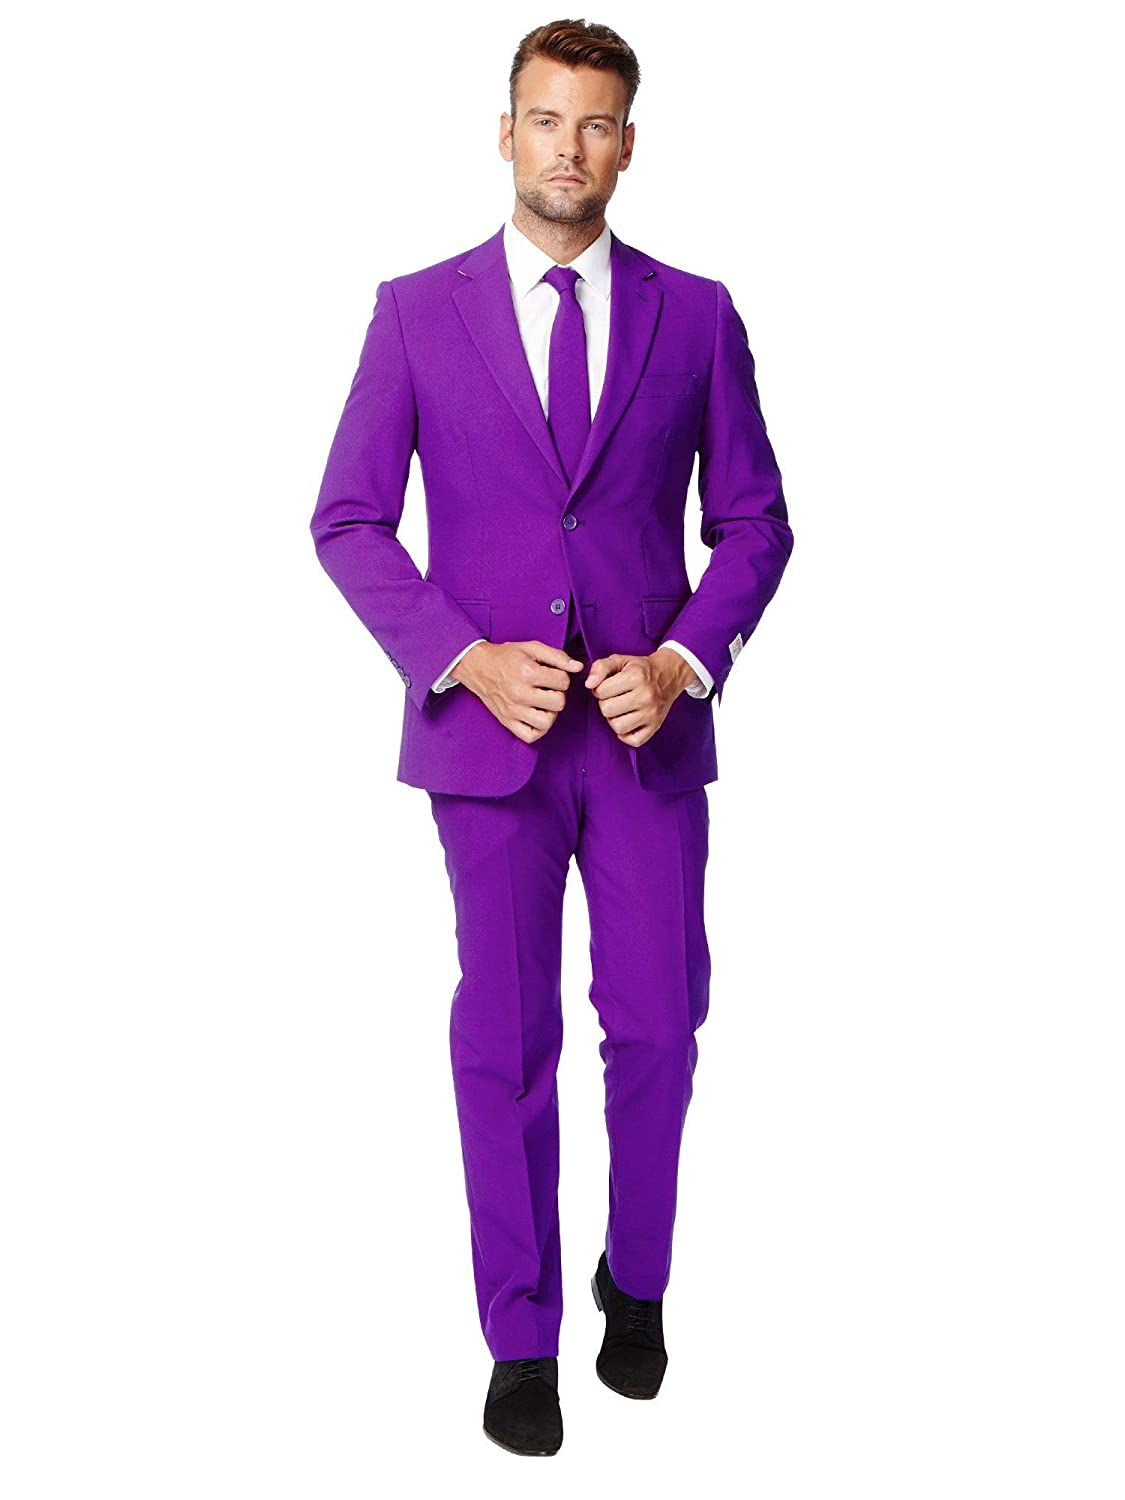 compra limitada púrpura Prince OppoSuits Solid Solid Solid Colourojo Suits For Men Coming with Pants, Jacket and Tie  costo real